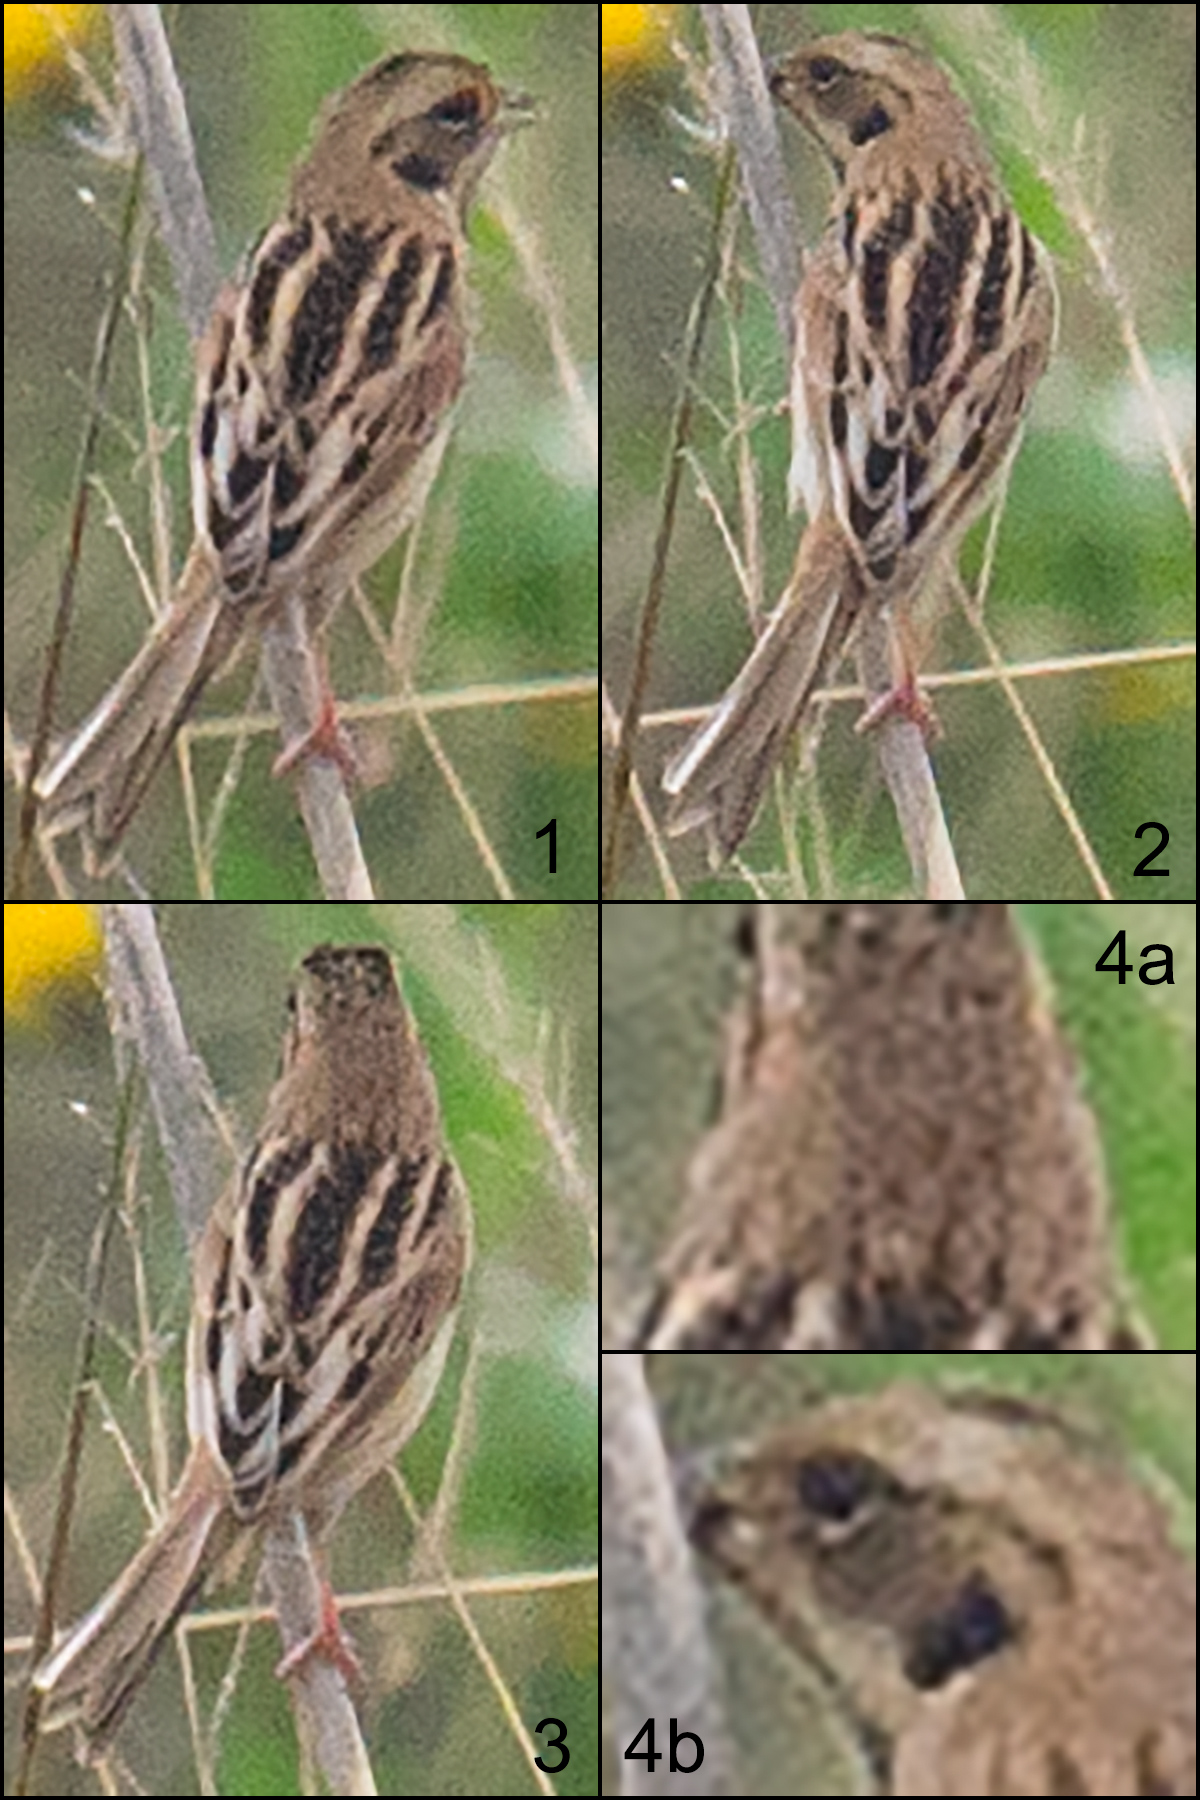 Japanese Reed Bunting Emberiza yessoensis. The IUCN lists it as Near Threatened because of the loss of wetland habitat in its breeding range (which includes Heilongjiang) as well as in its wintering grounds. The continued degradation of the Nanhui coastal marshes is a prime example of the general problems this species faces.